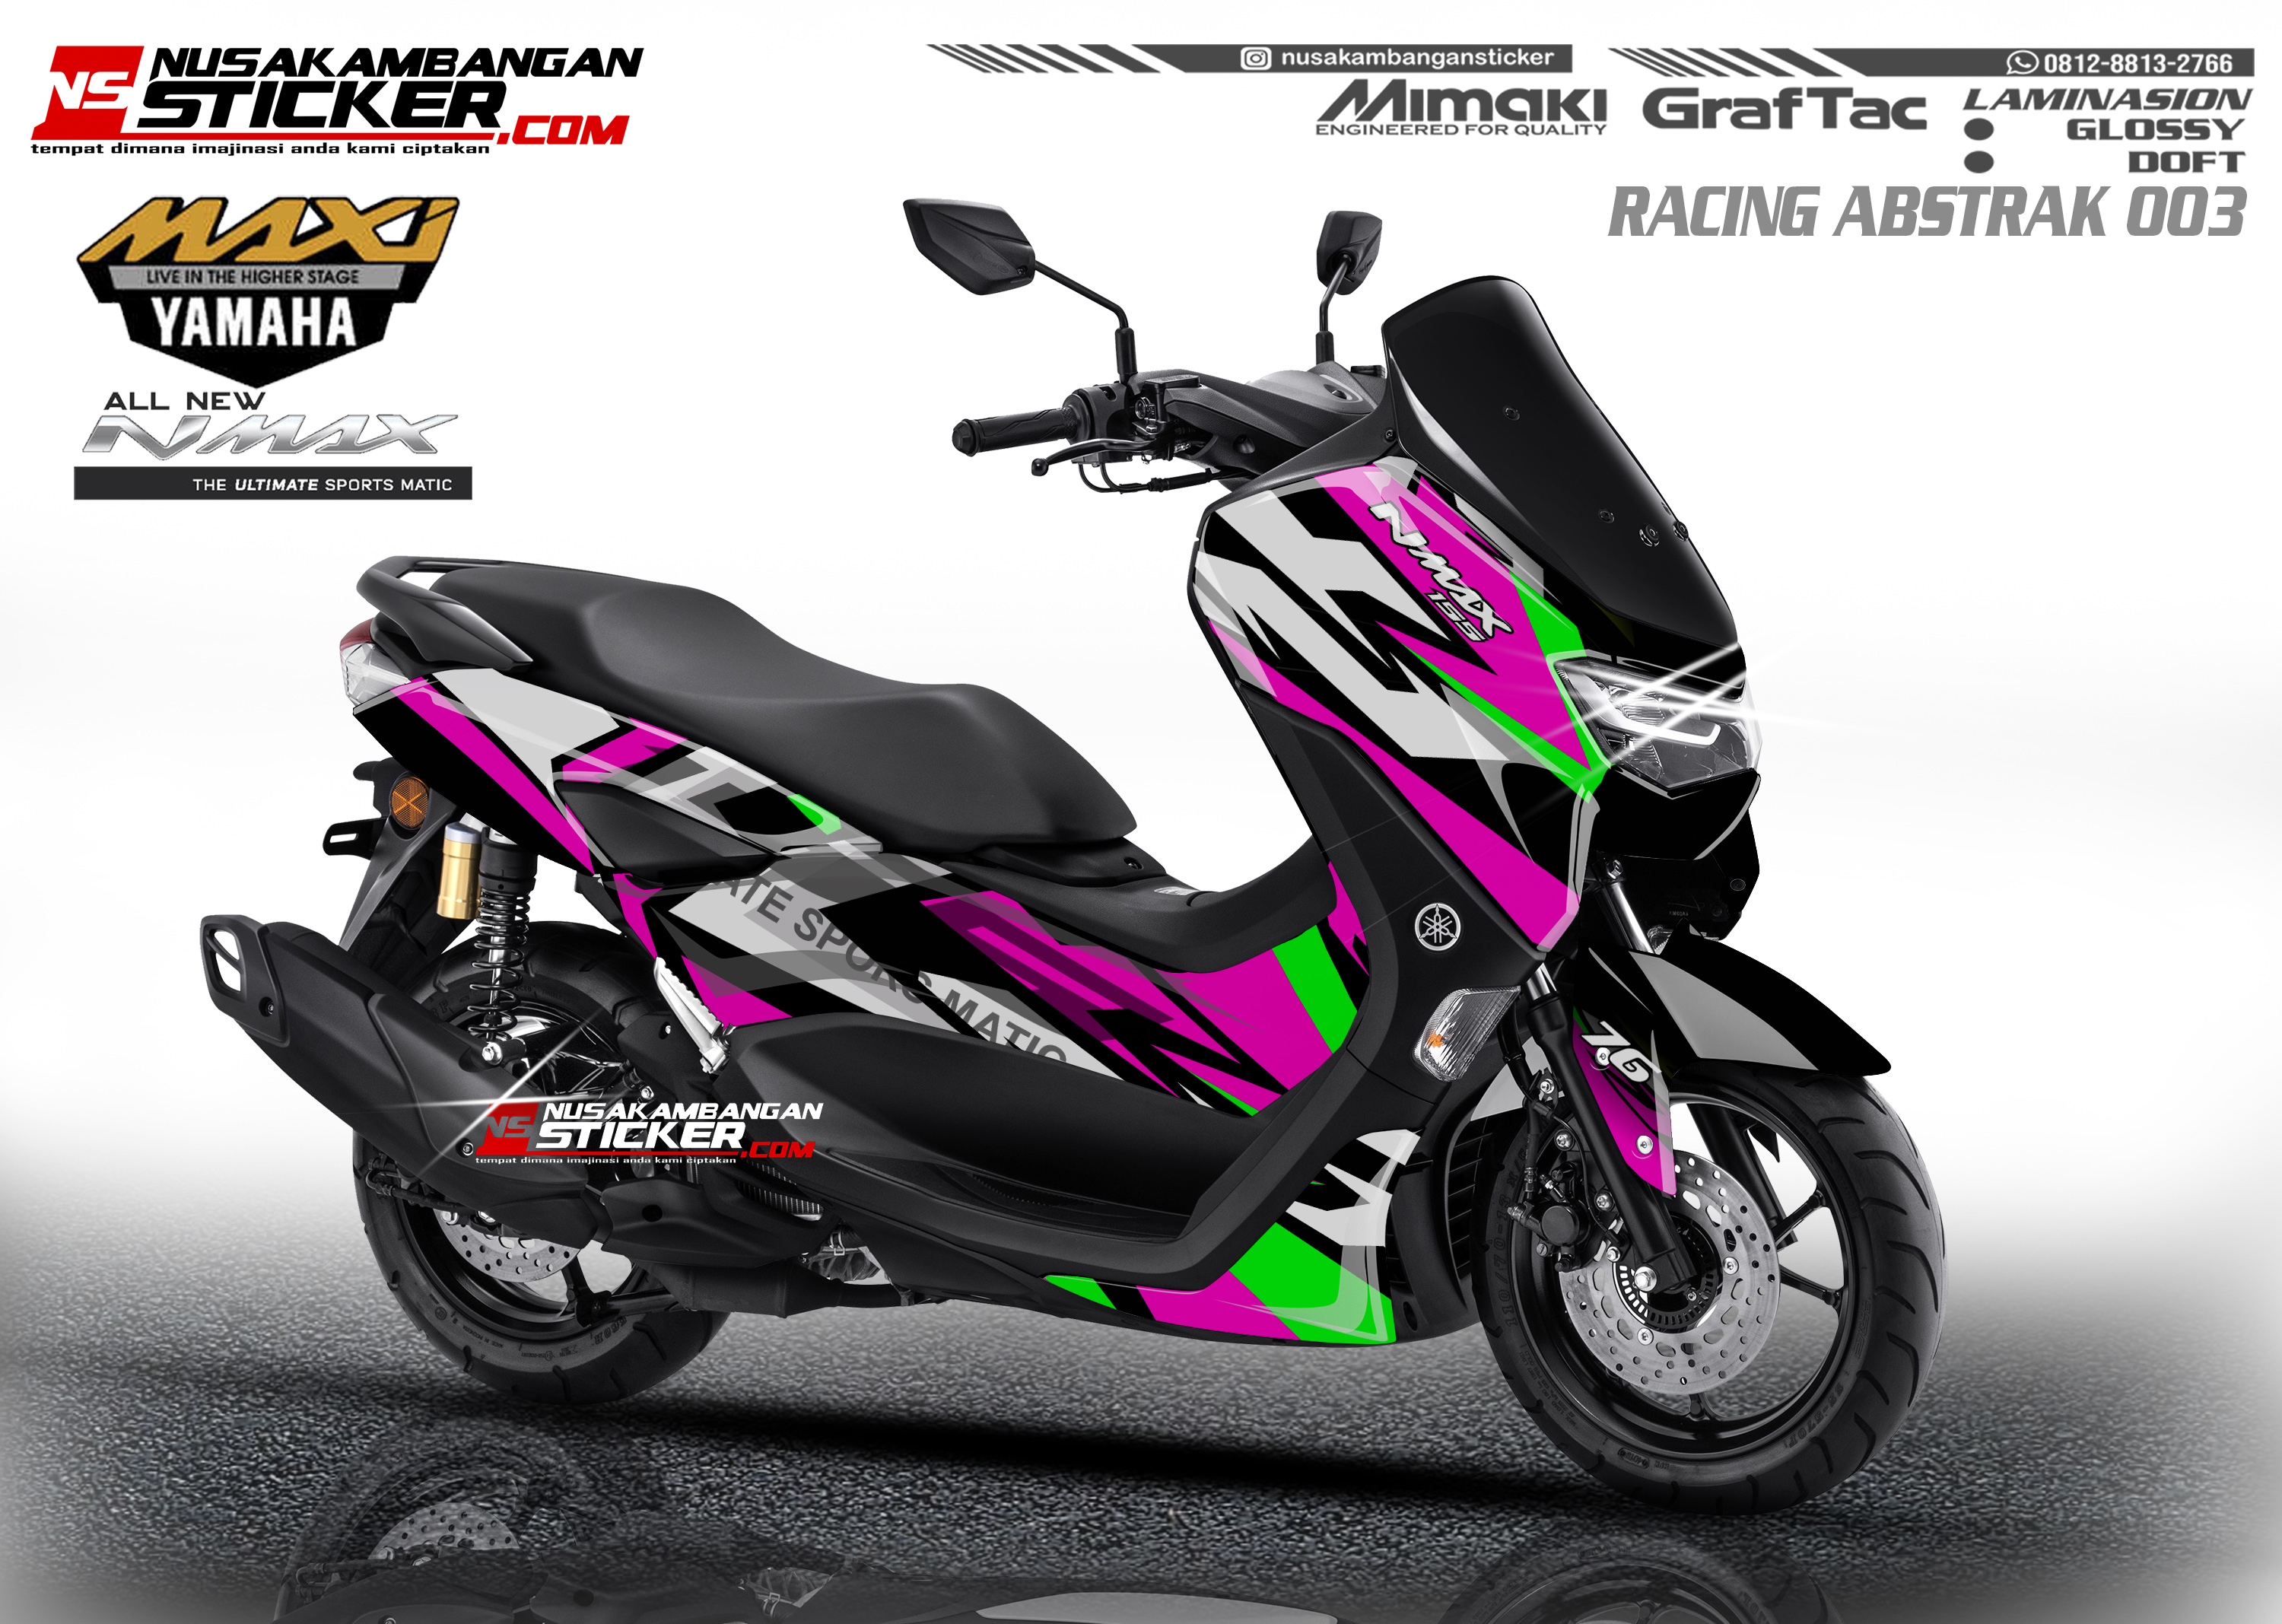 Decal Stiker Nmax 155 New Grafis Abstrak Nusakambangan Sticker